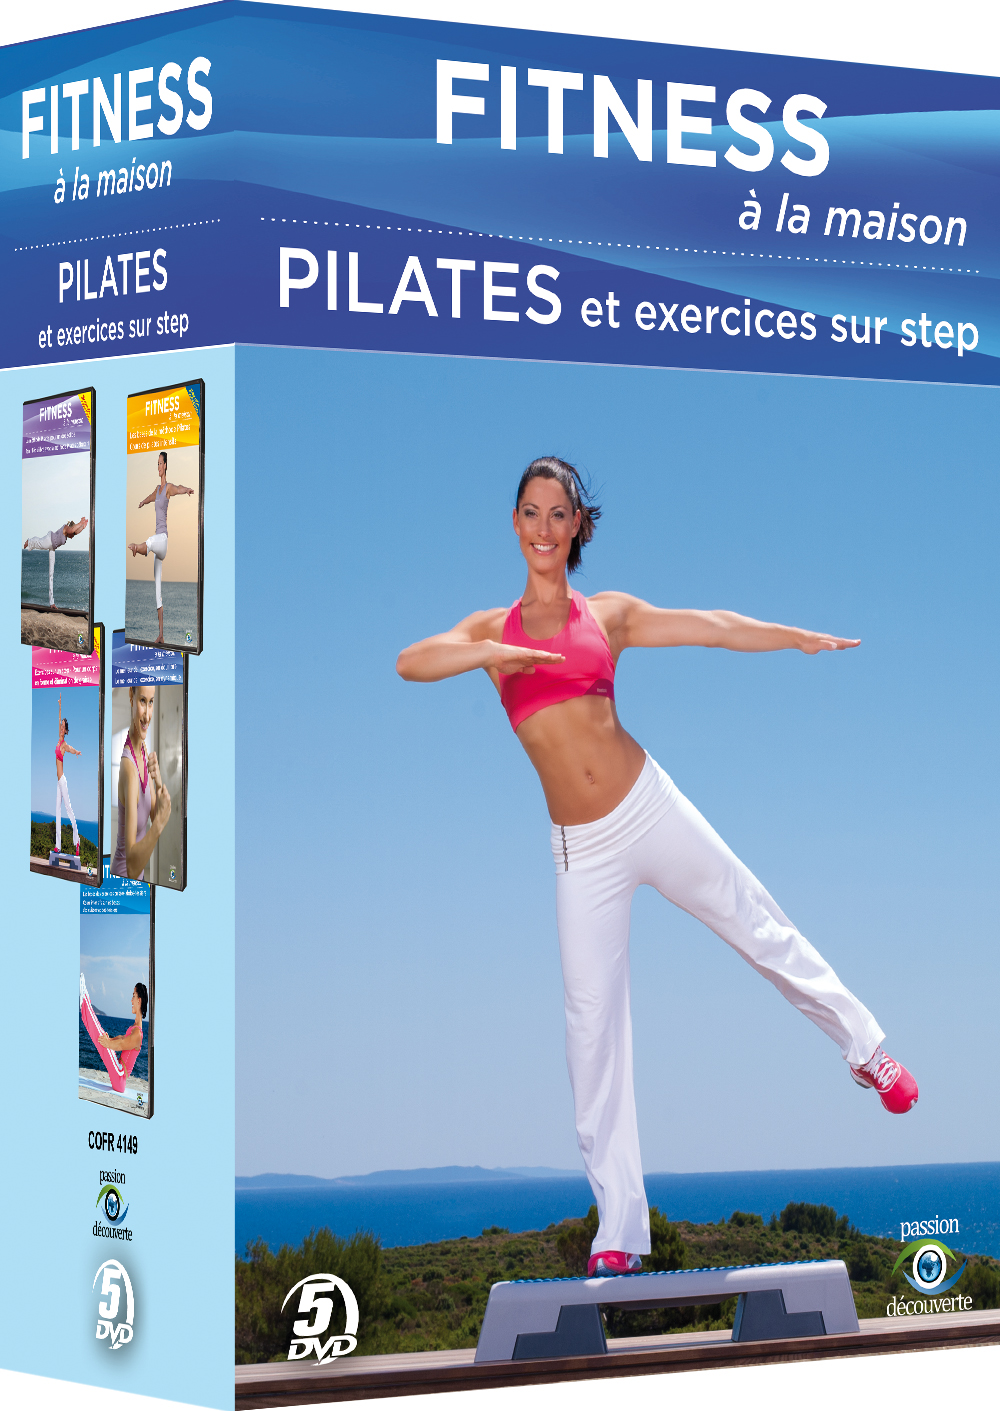 fitness la maison 2 pilates et exercices sur step. Black Bedroom Furniture Sets. Home Design Ideas